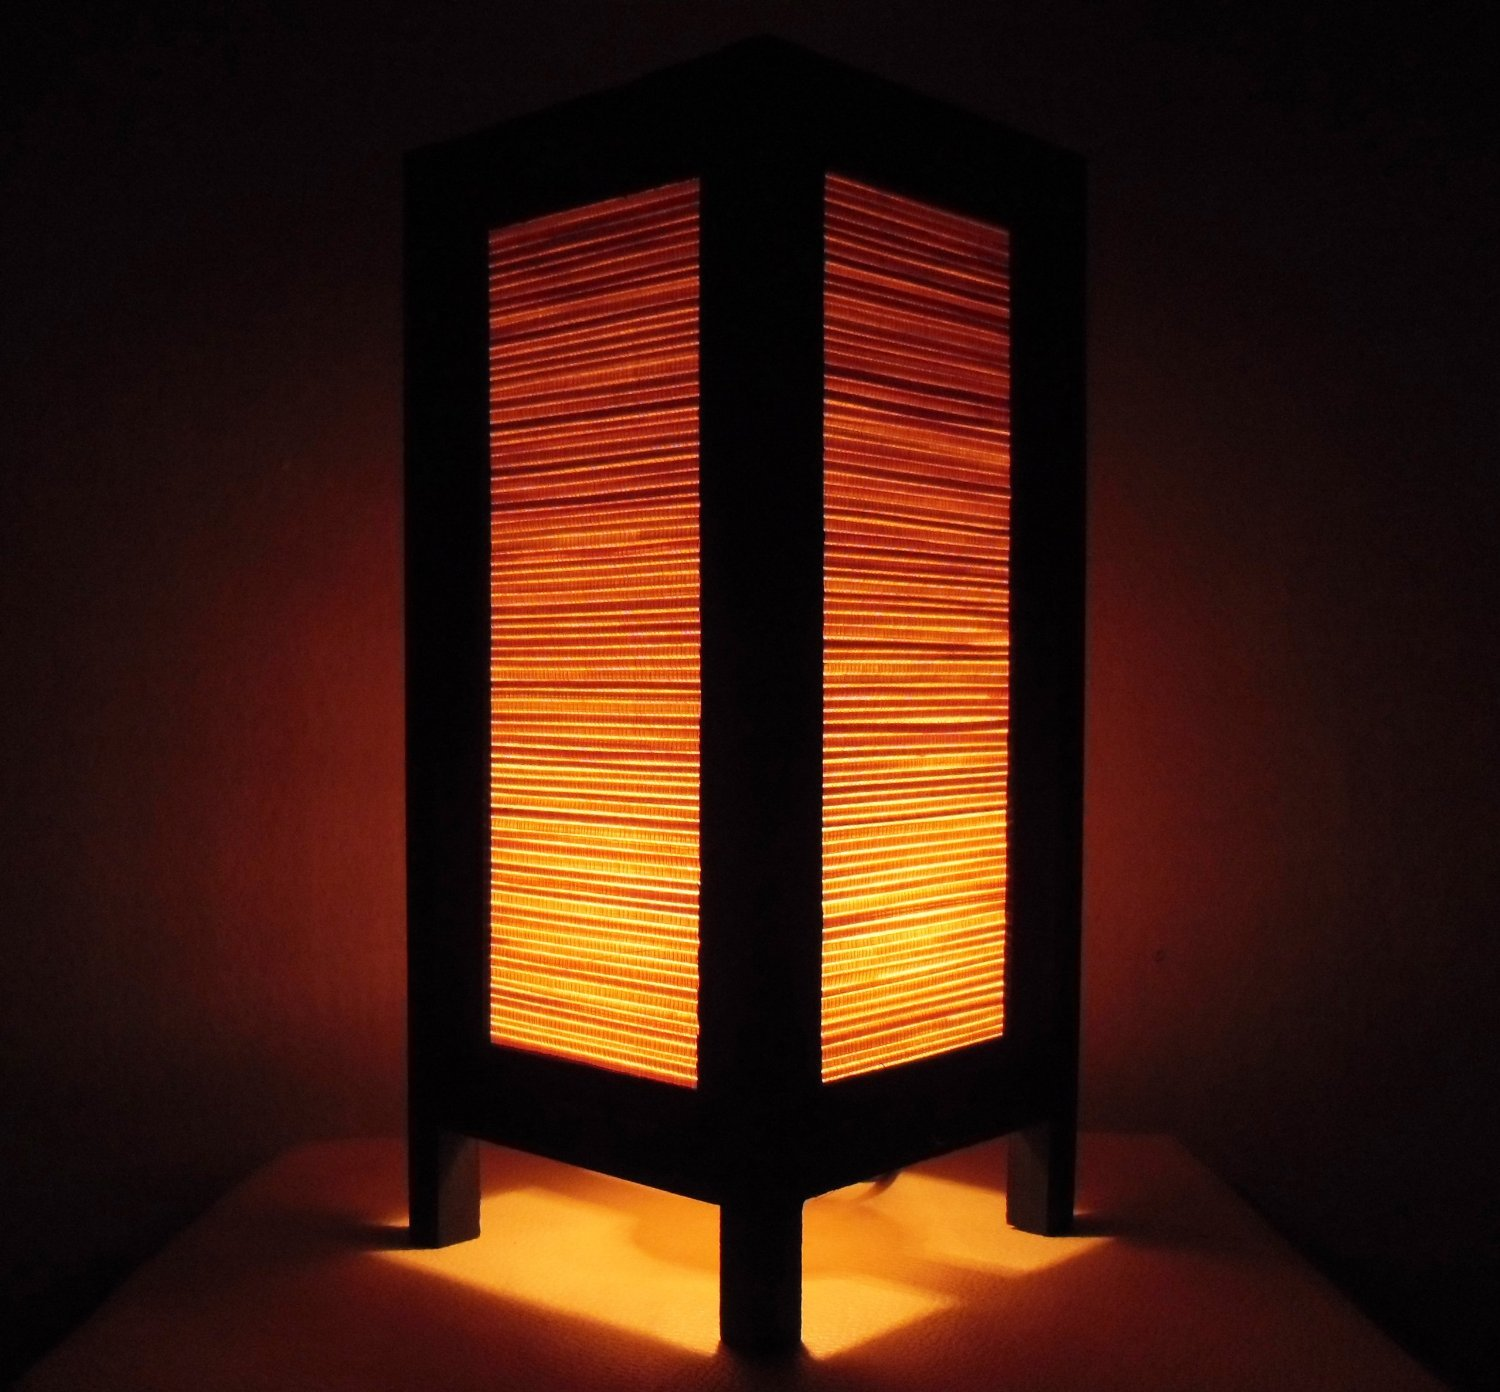 Thai Vintage Handmade Classic Bamboo Art Bedside Table Light or Floor Wood Paper Lamp Shades Home Bedroom Garden Decor Modern Design